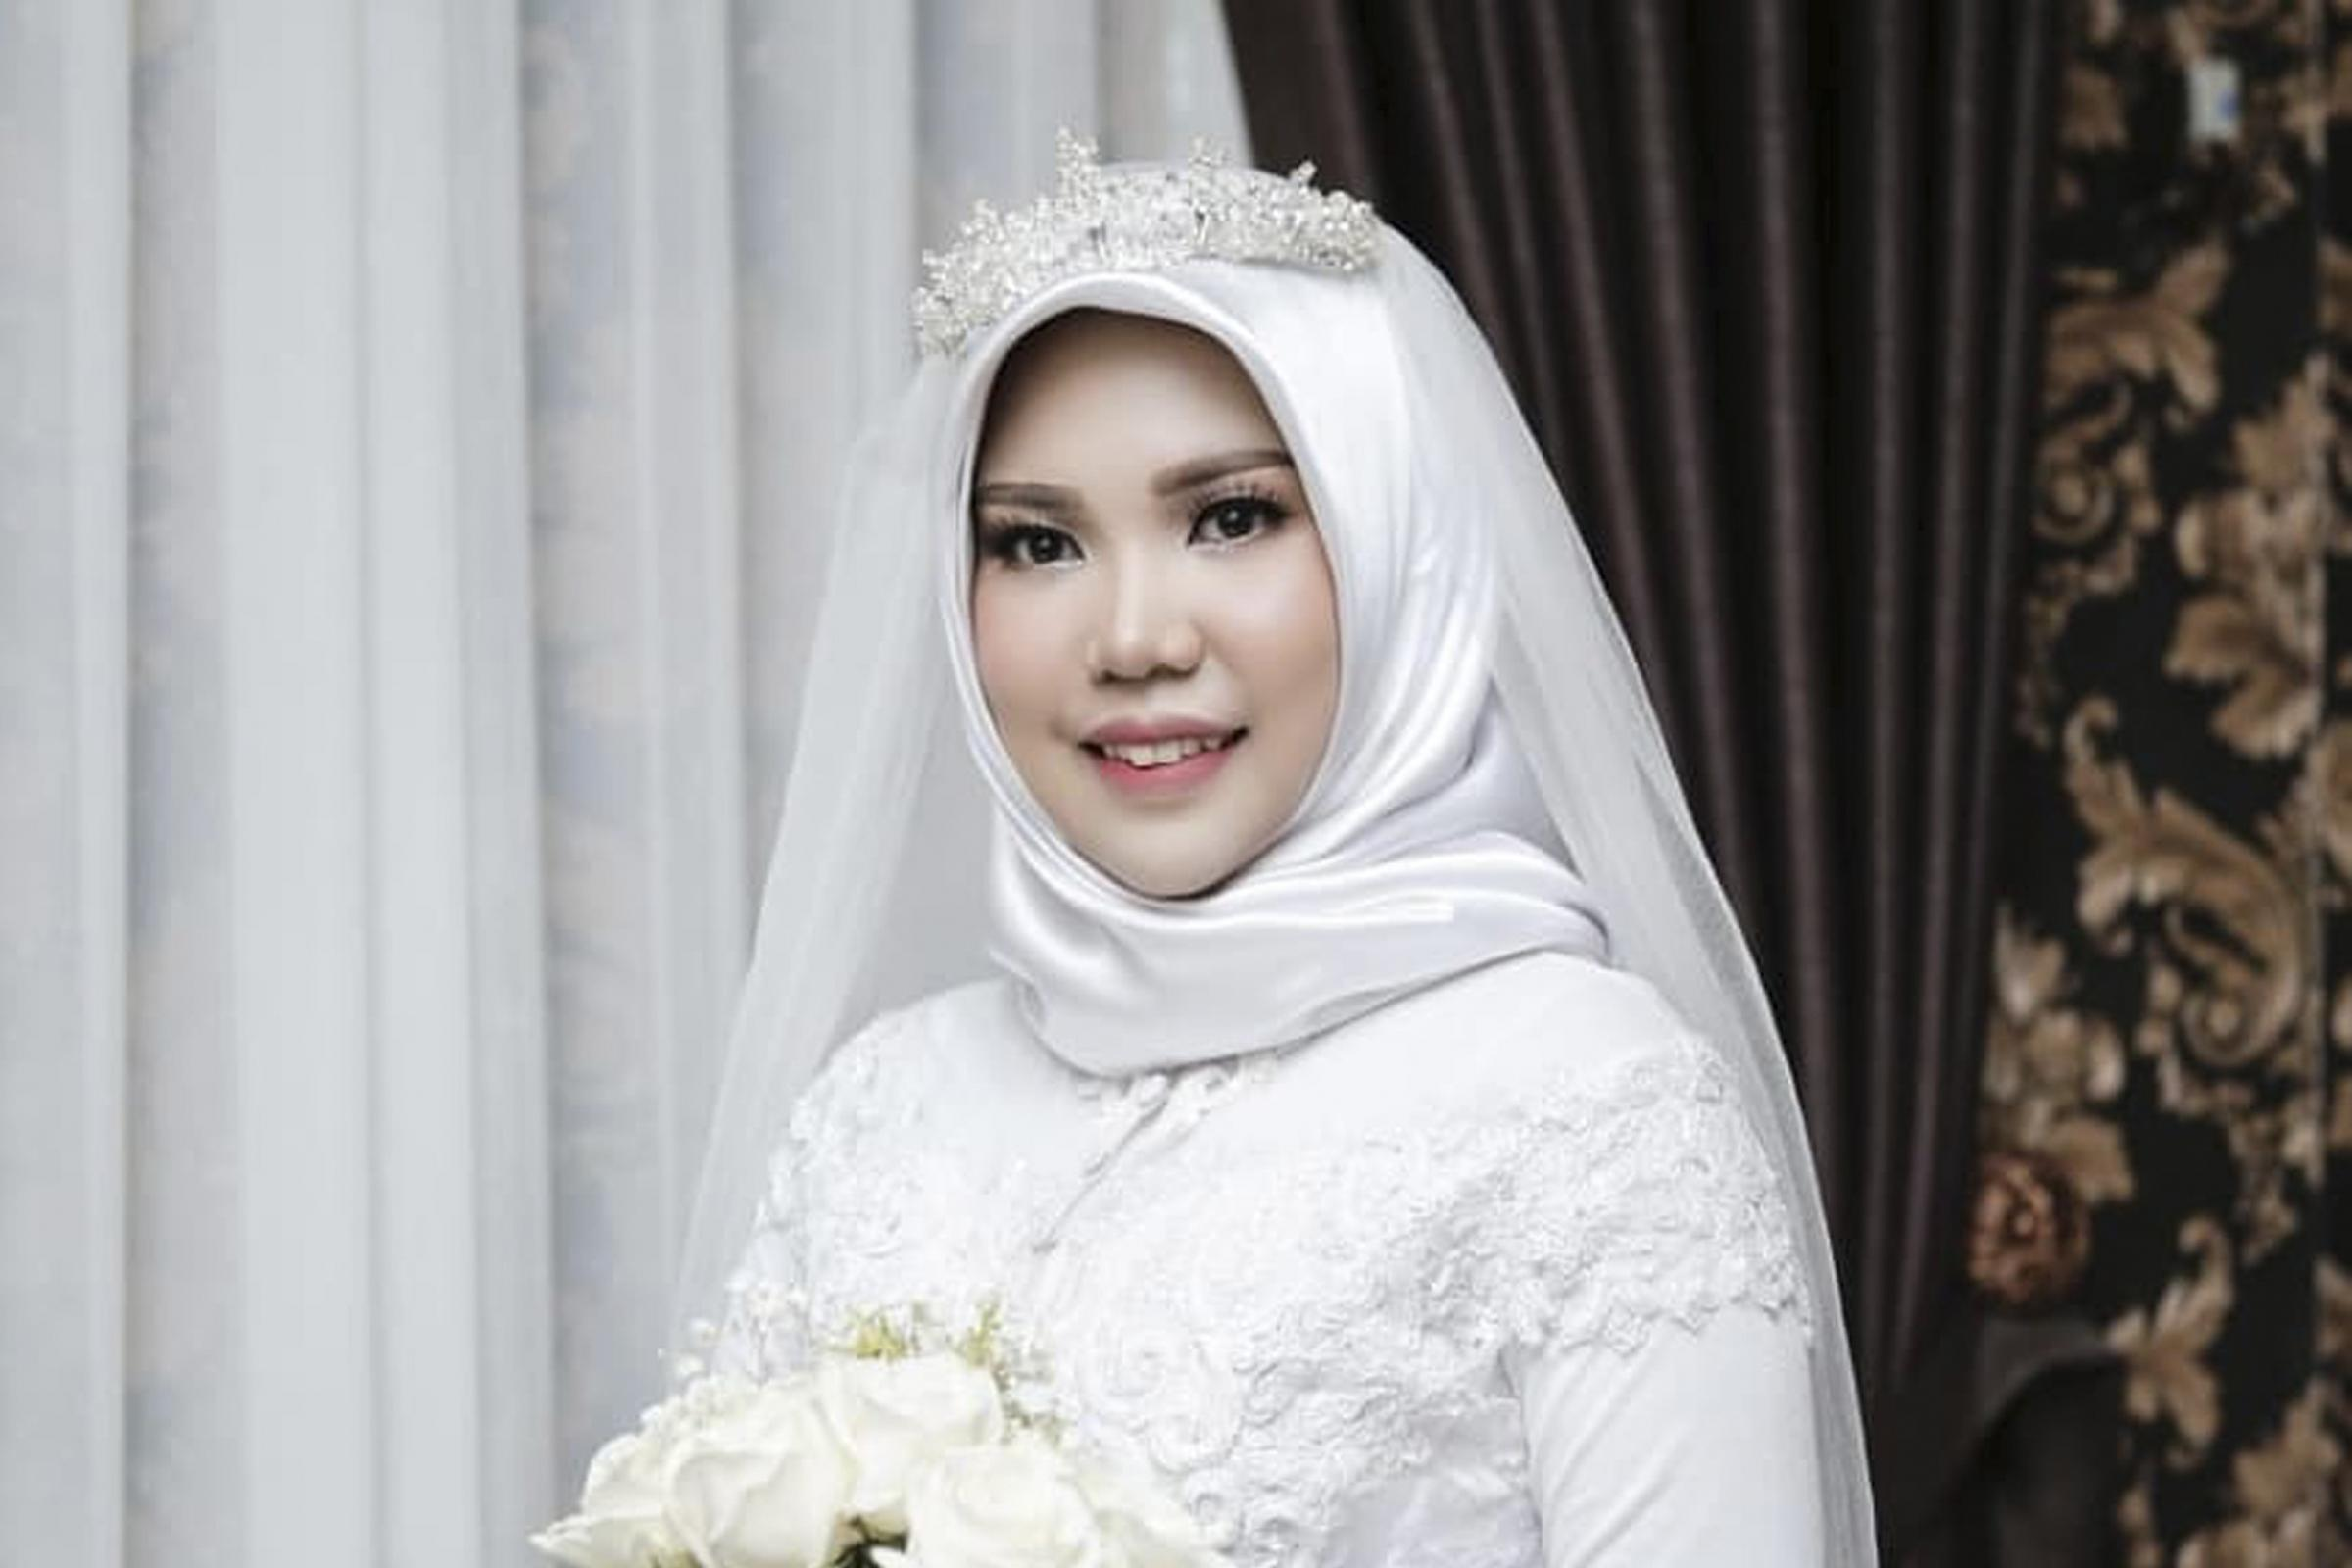 Woman wears wedding dress on day she would have married plane crash victim